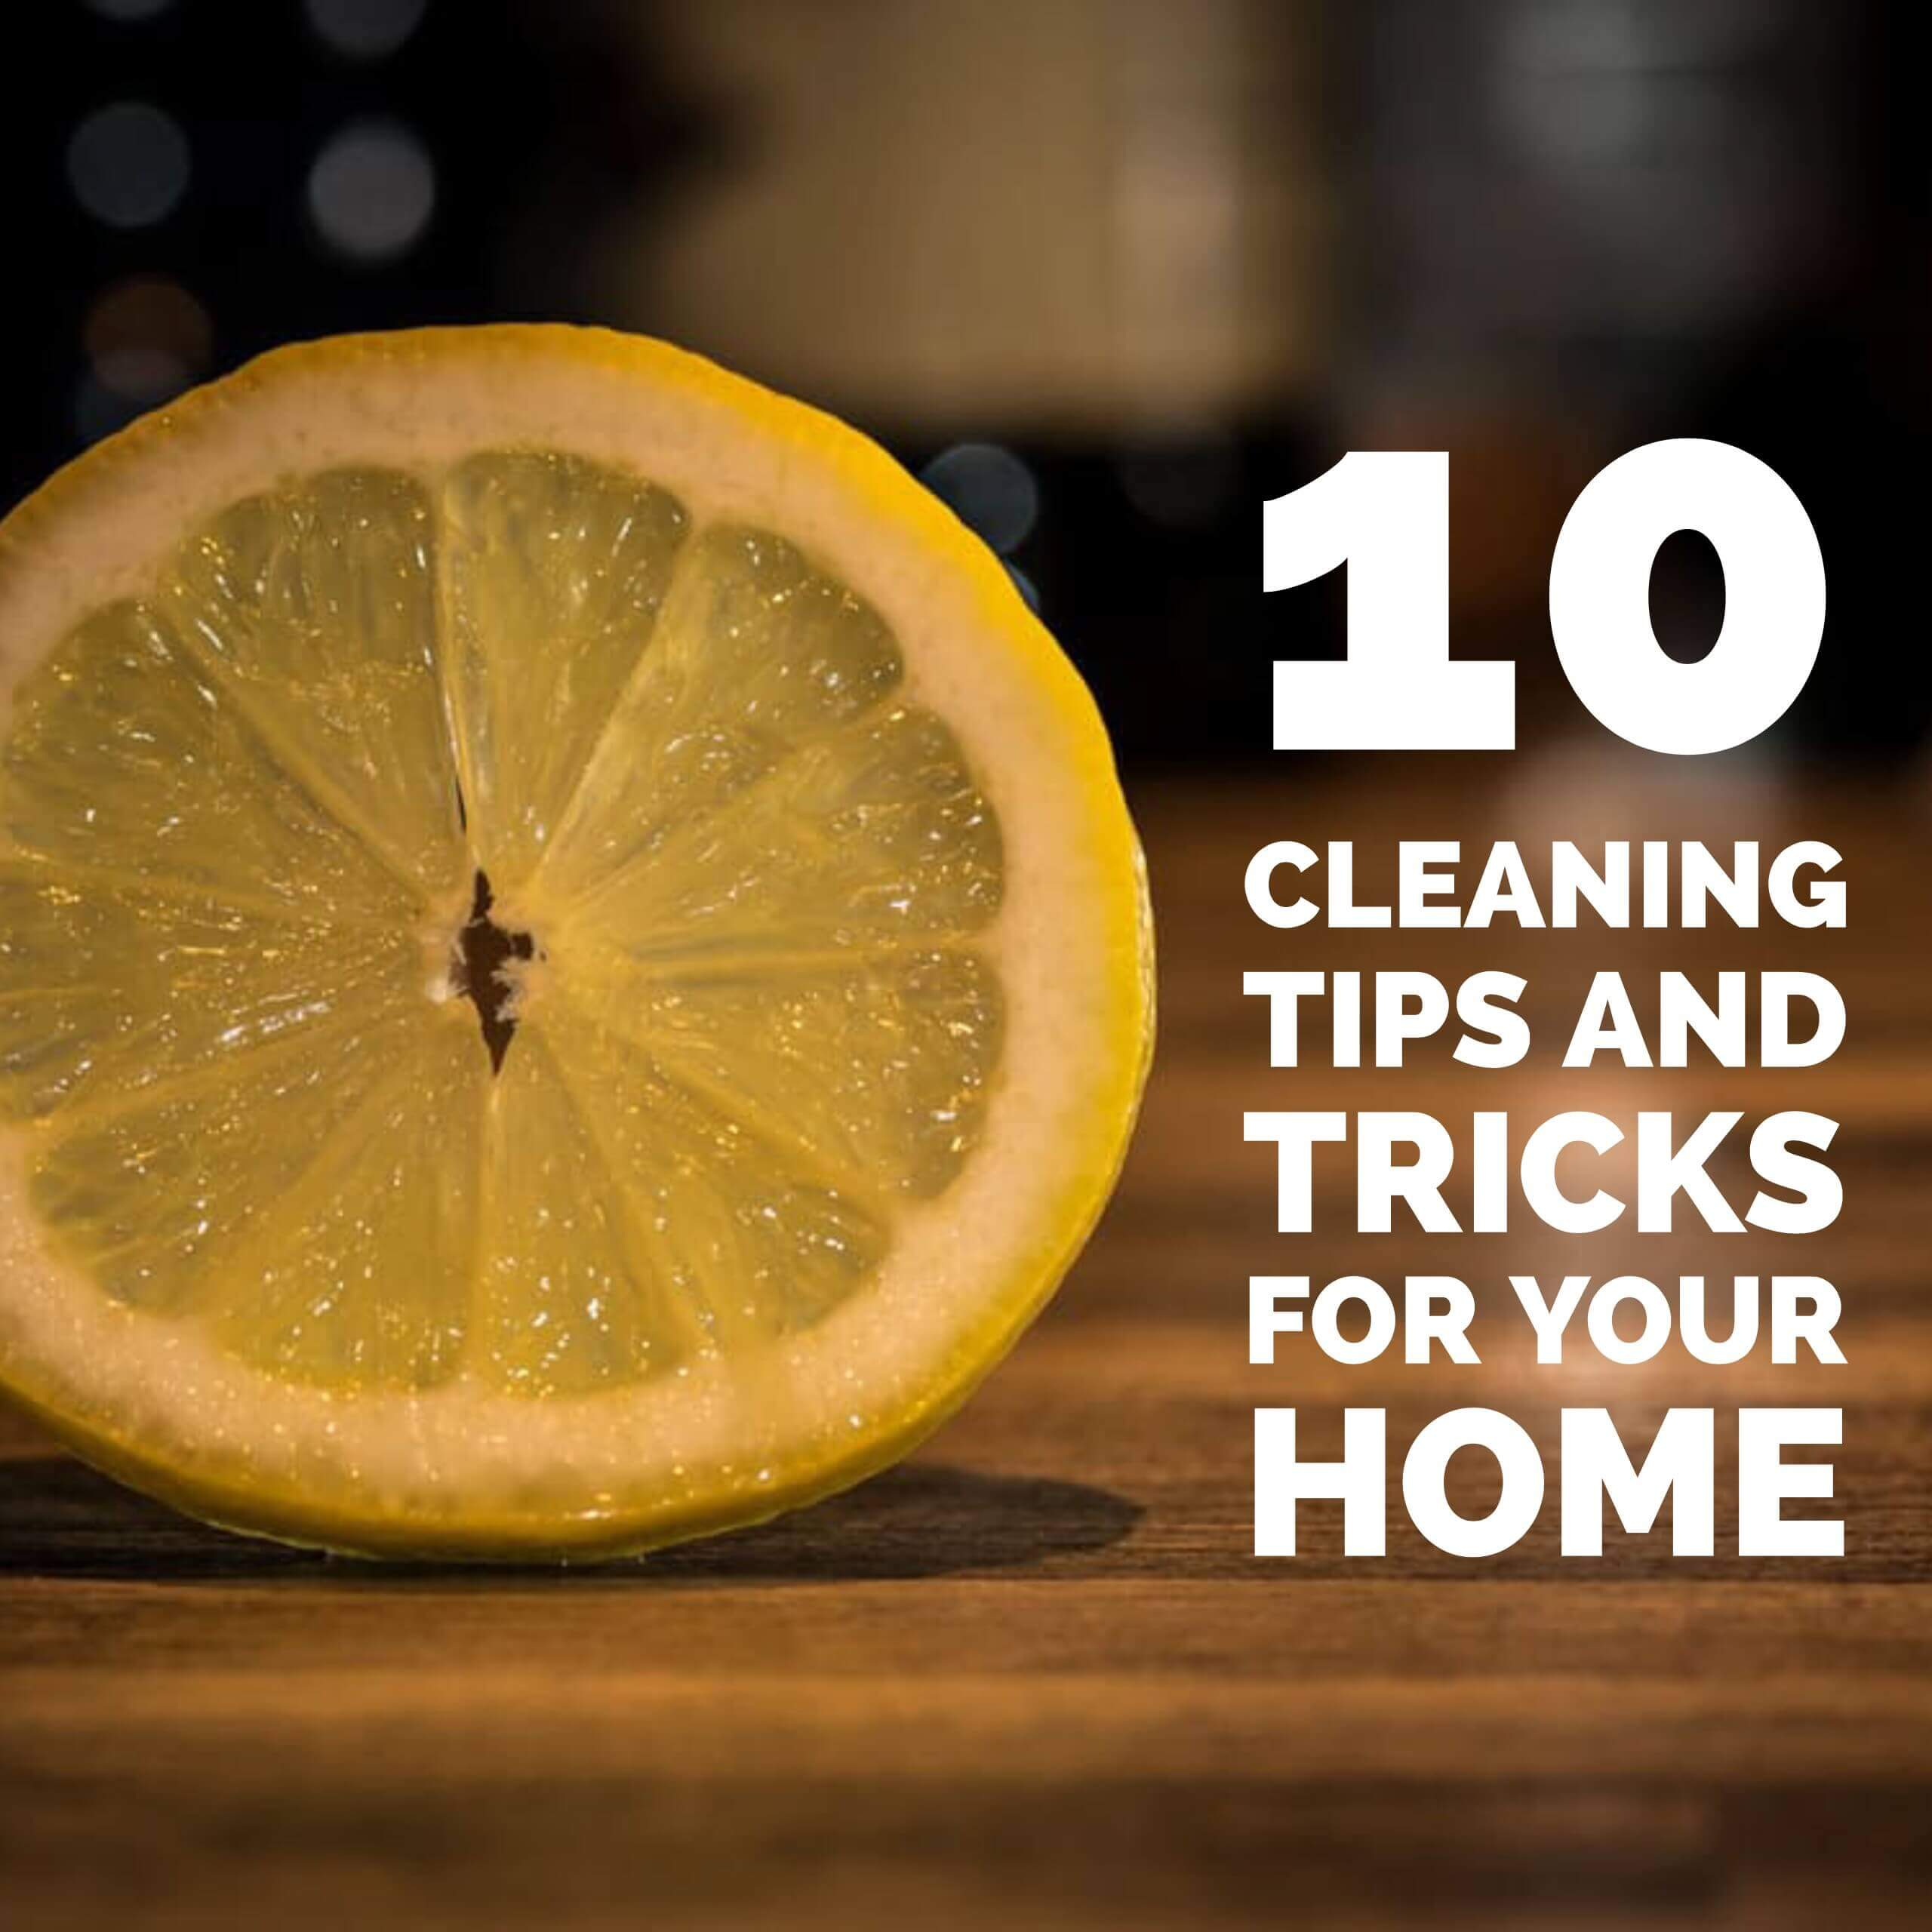 10-cleaning-tips-and-tricks-for-your-home-a-1-disposal-utah